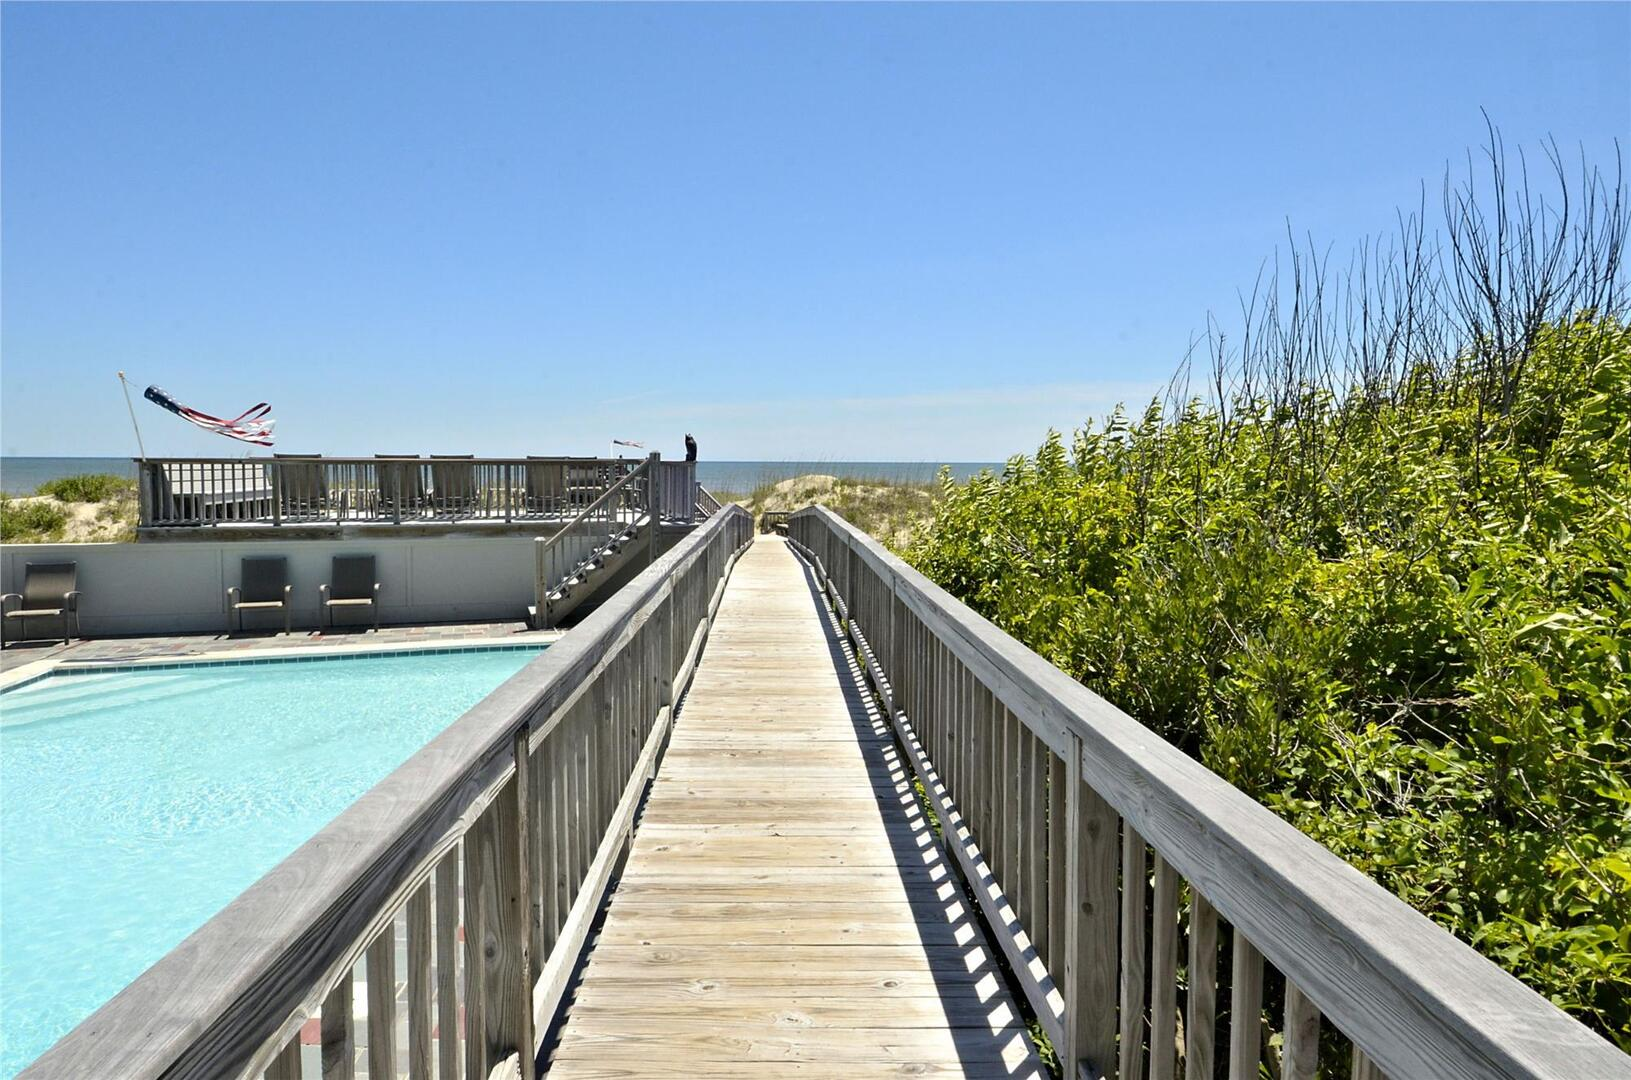 Entry Level,Walkway to Beach,